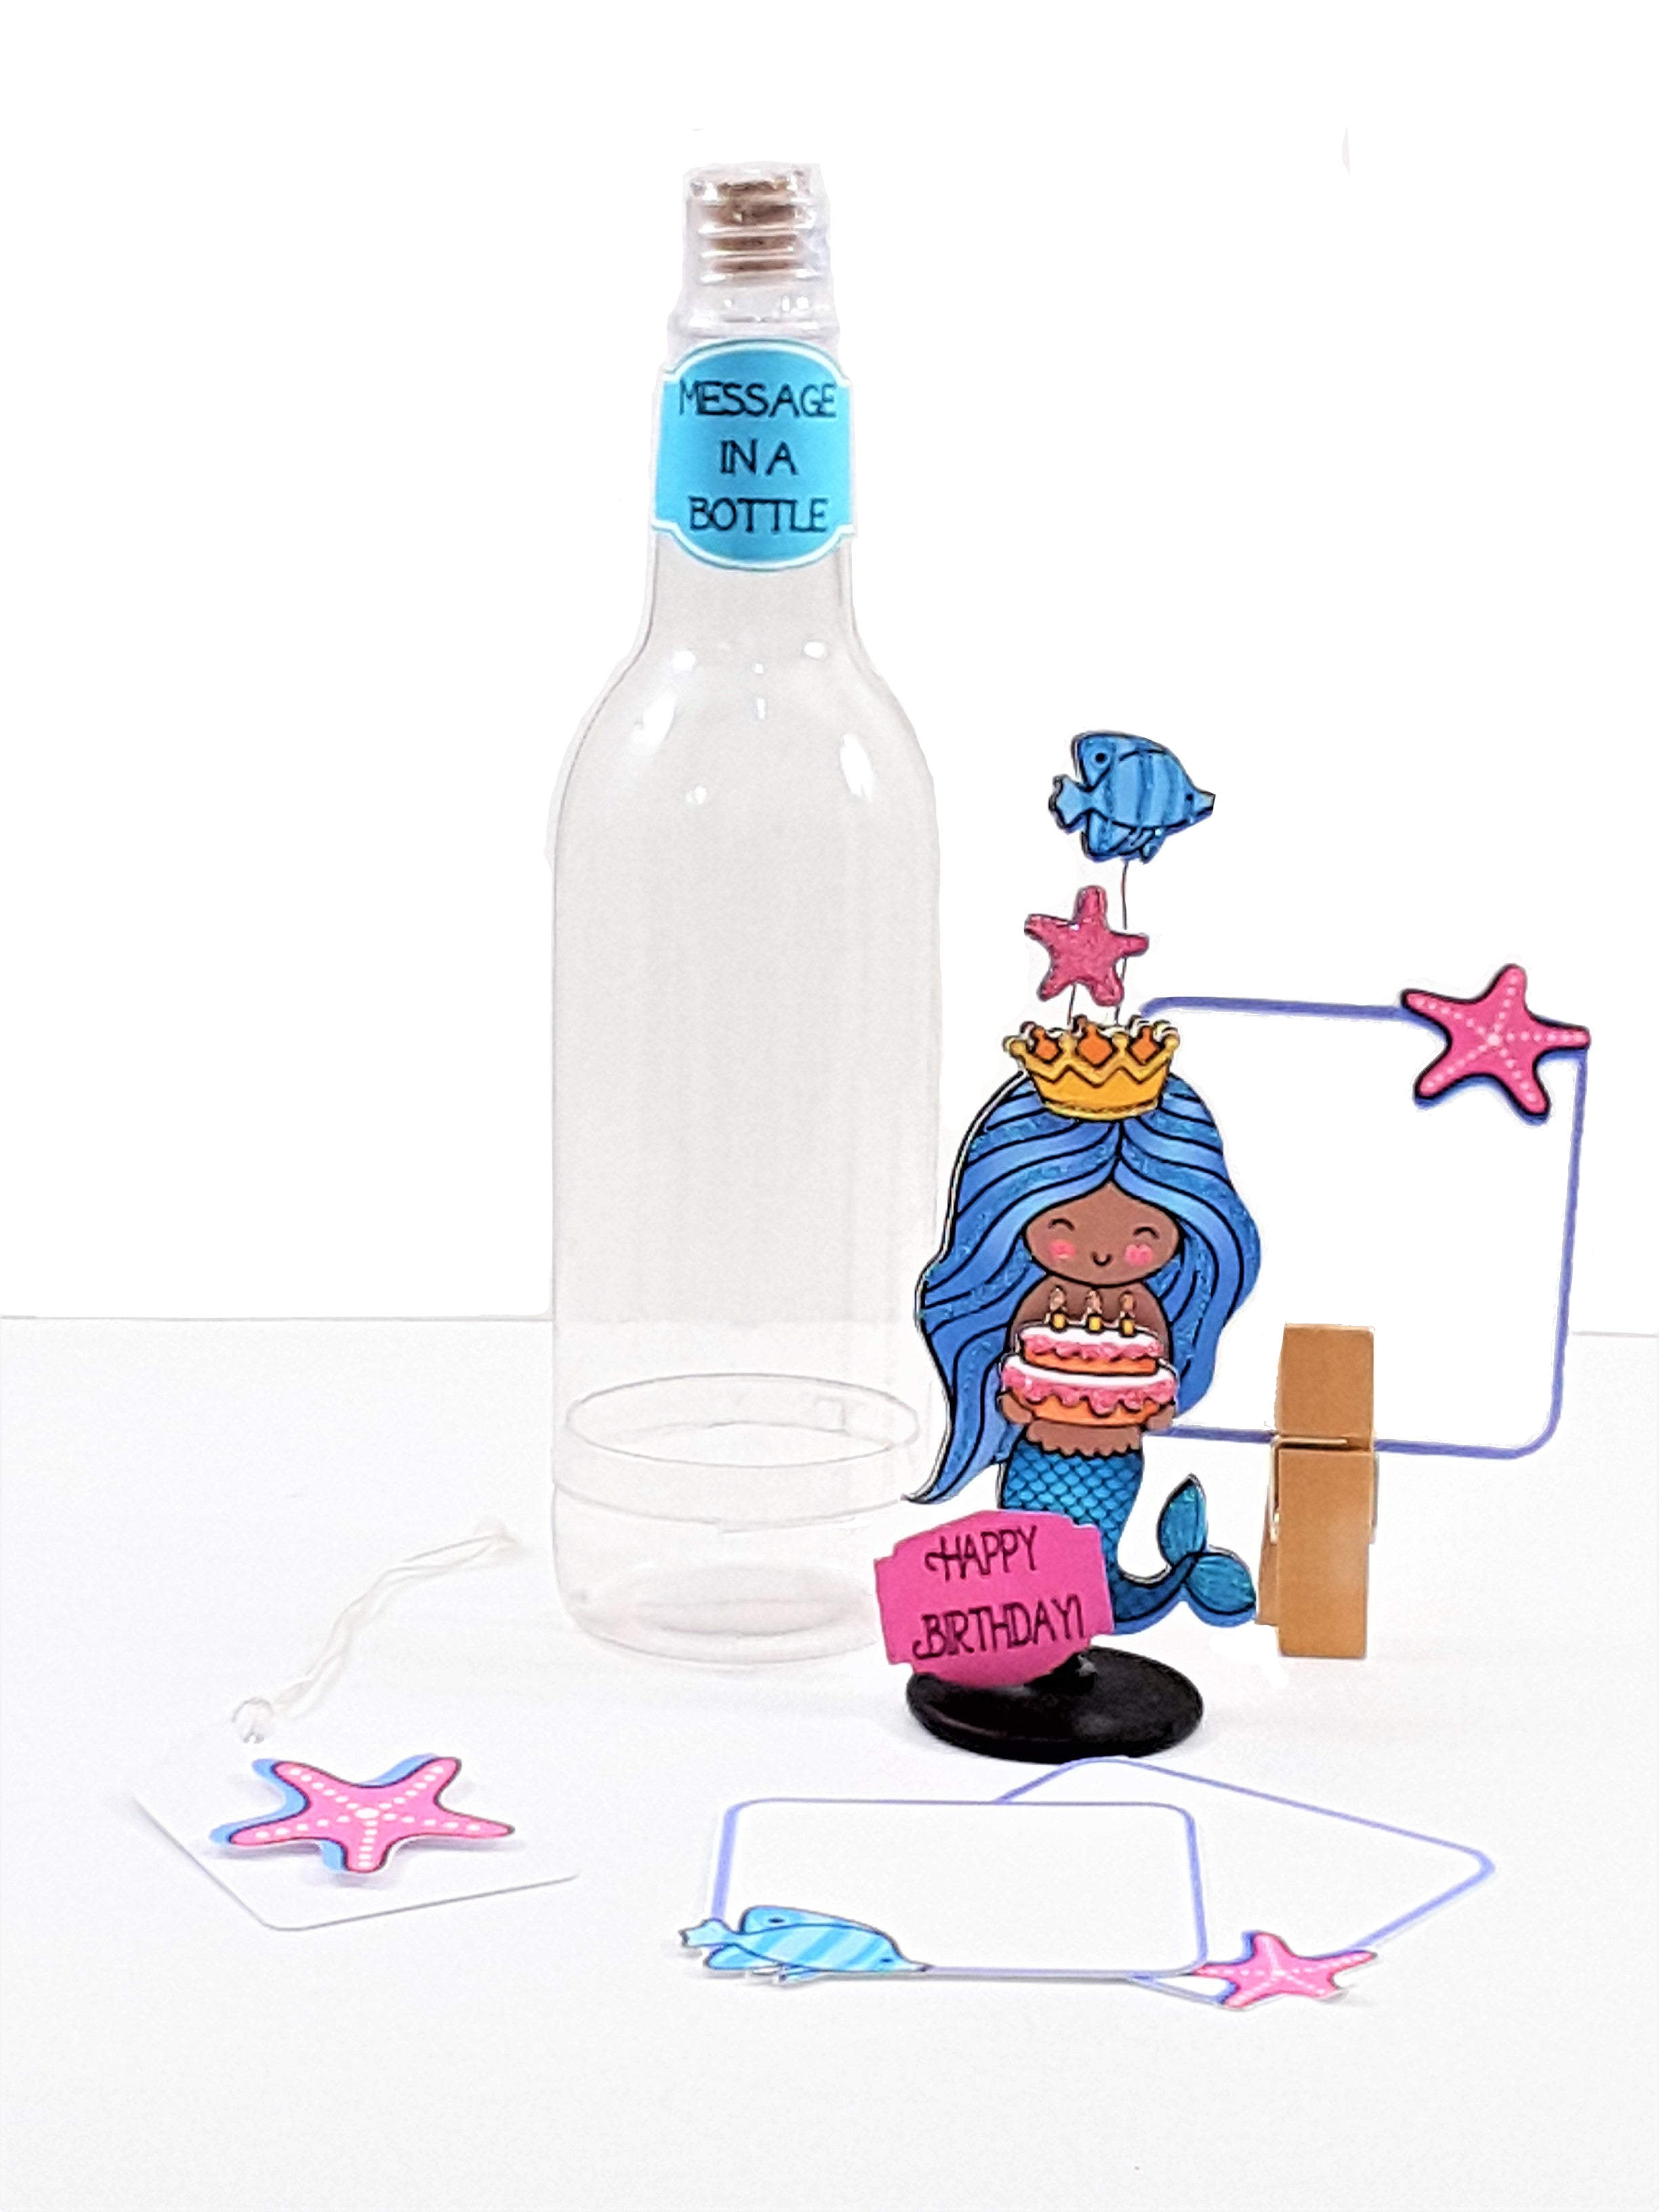 Personalized Message in a Bottle 3D Mermaid Happy Birthday card - TheLastWordBish.com